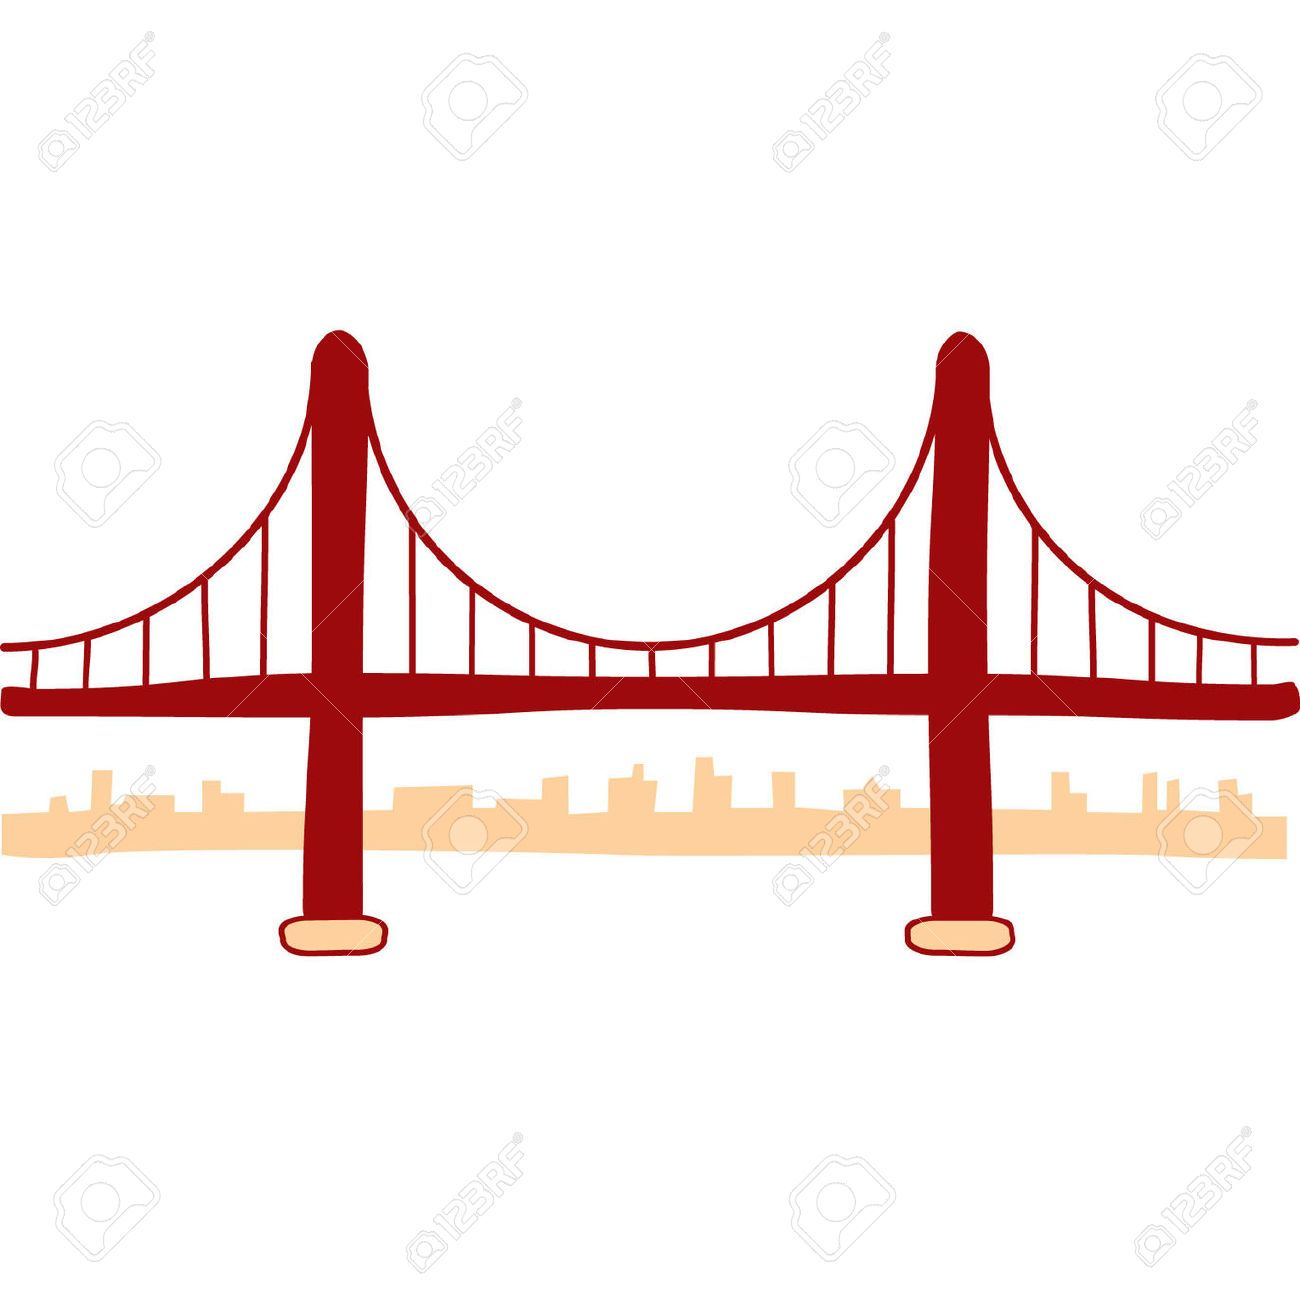 Golden Gate Bridge Drawing Clip Art at PaintingValley.com.